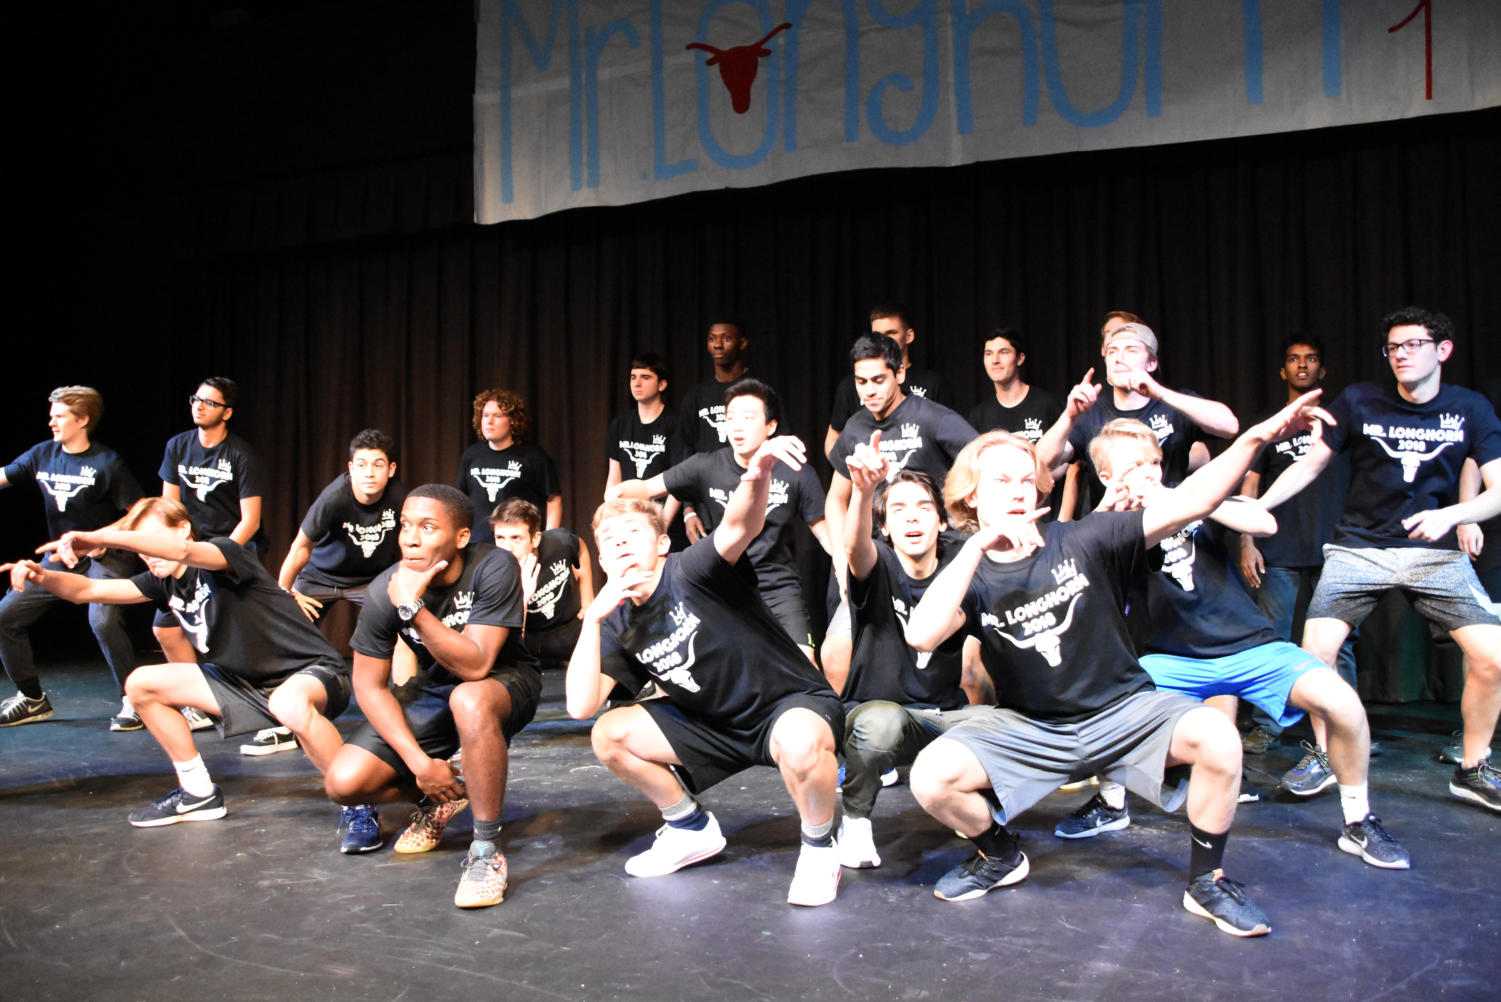 The 20 contestants in last year's Mr. Longhorn competition at Parkway West pose for the crowd. At South High, Mr. Patriot was canceled last year for the first time.